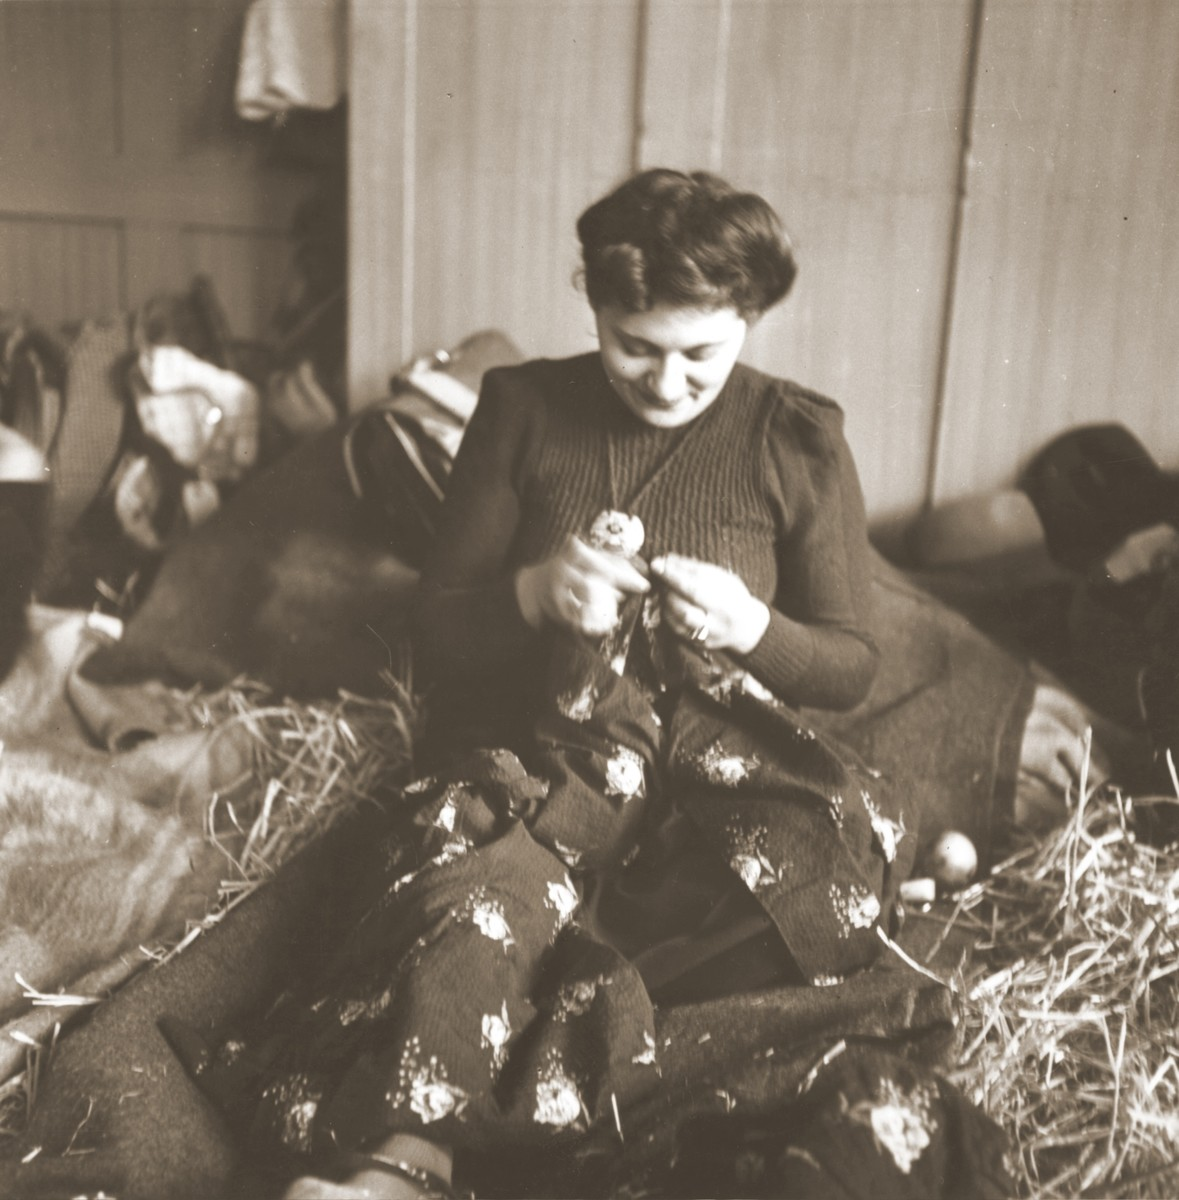 A Jewish woman rescued from Theresienstadt mends her clothing in the Hadwigschulhaus in St. Gallen.